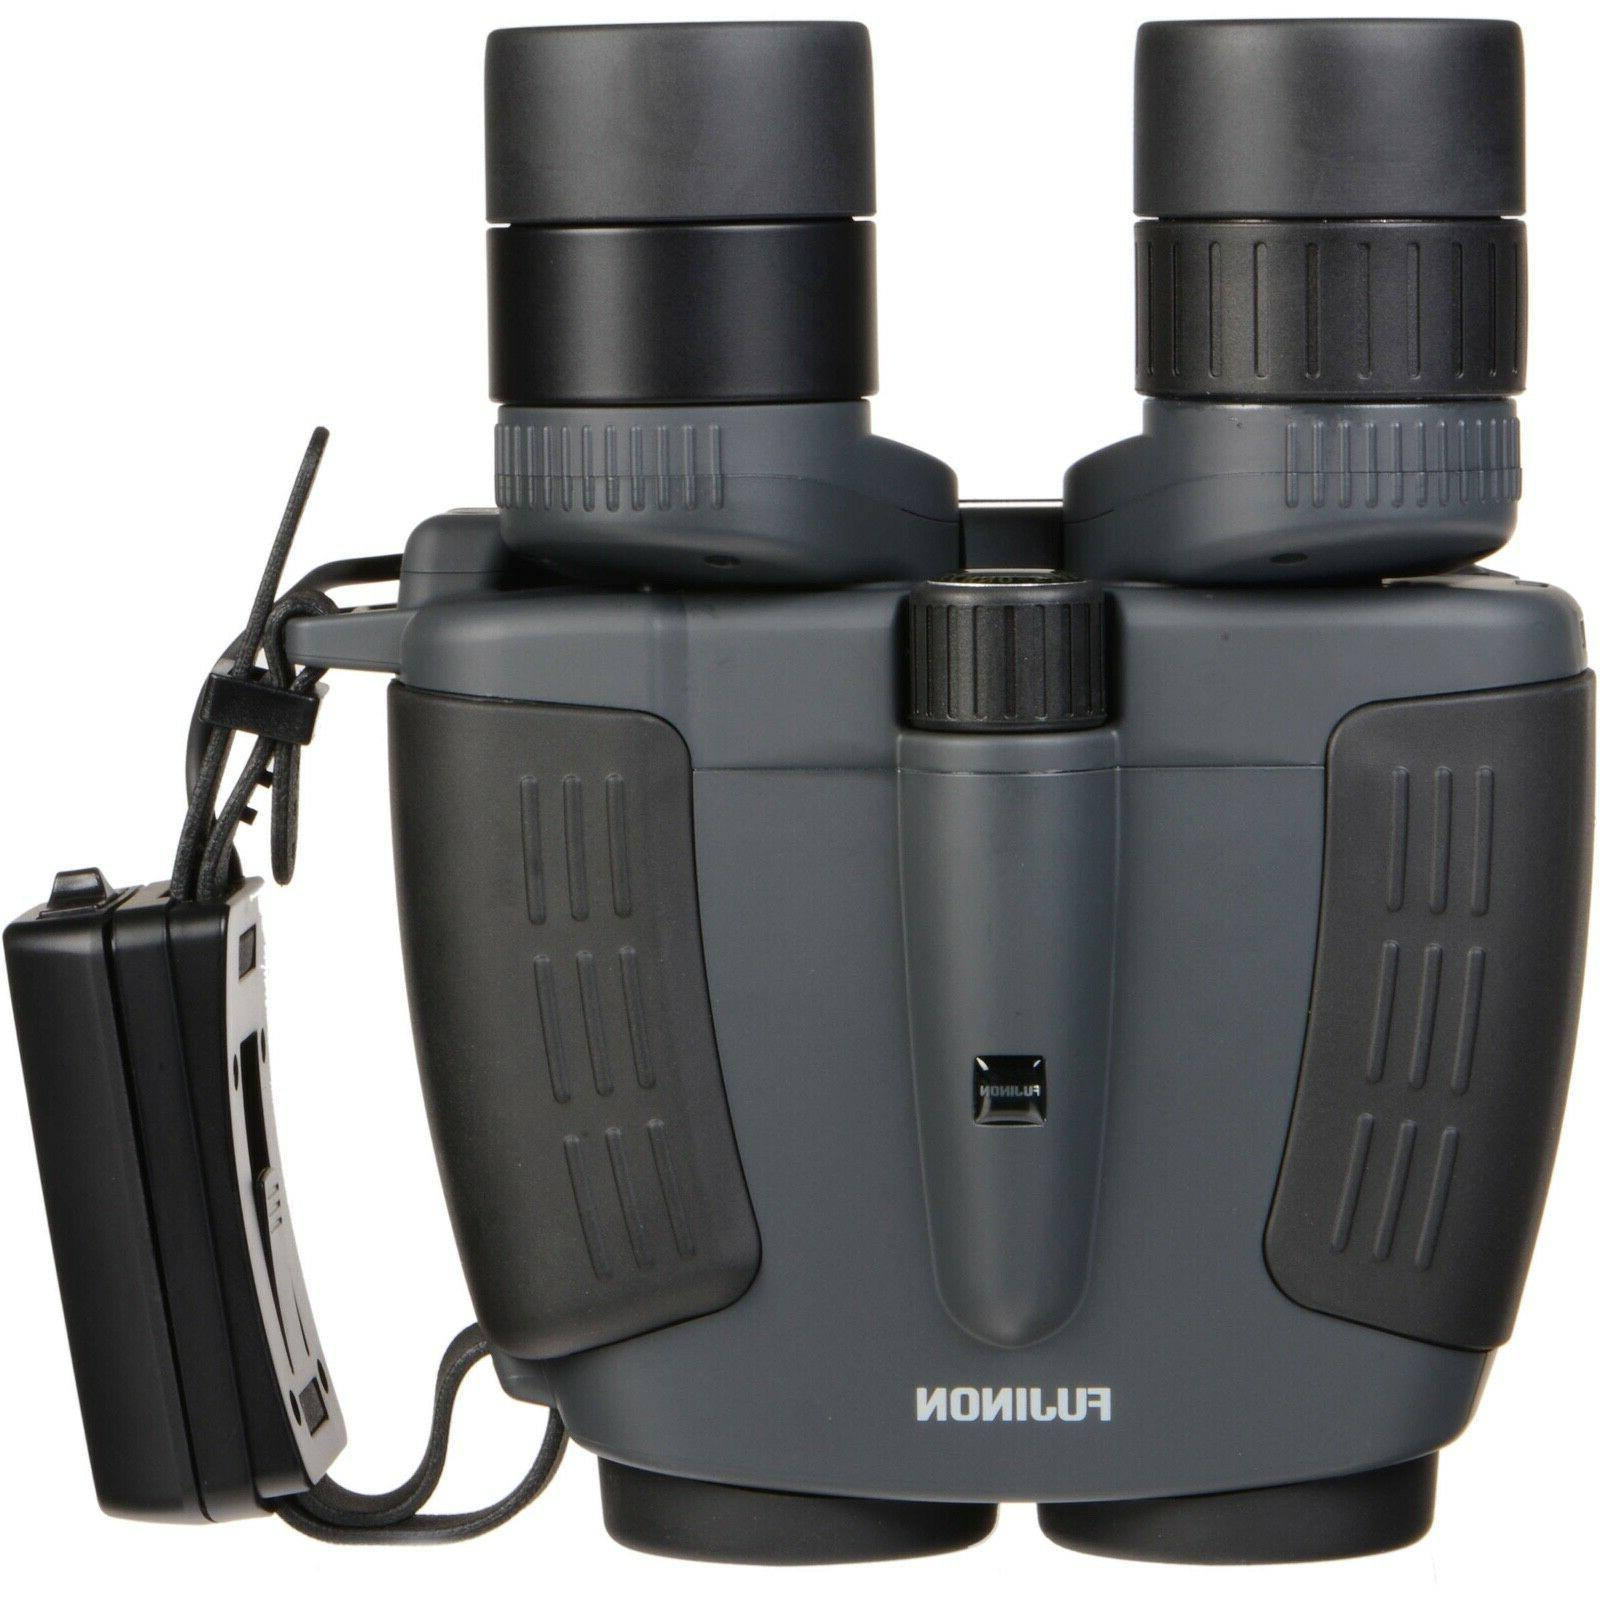 12x32 techno stabi jr image stabilized binocular